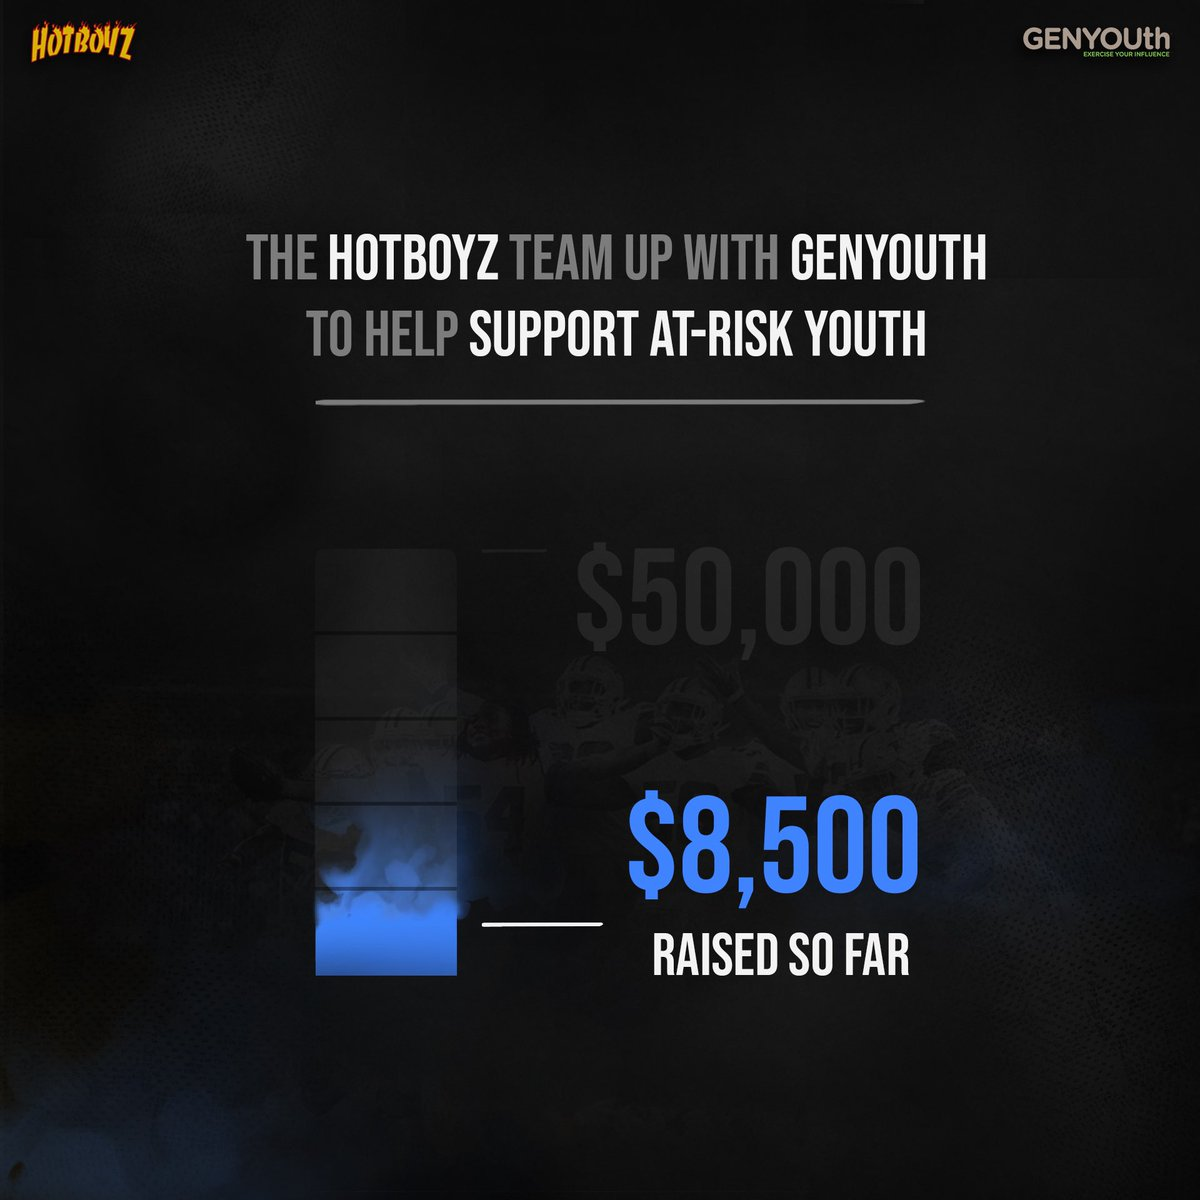 Our second installment of @HotBoyzTM support fund supporting @GENYOUthNow is up to $8500!! Our goal is $50k ! Visit https://t.co/BPVWGZDpjm to support & help us reach our goal & helping feed thousands of kids!! There are still some great things to bid on!! Check it! 🙏🏾 https://t.co/xLOoSN1JgH